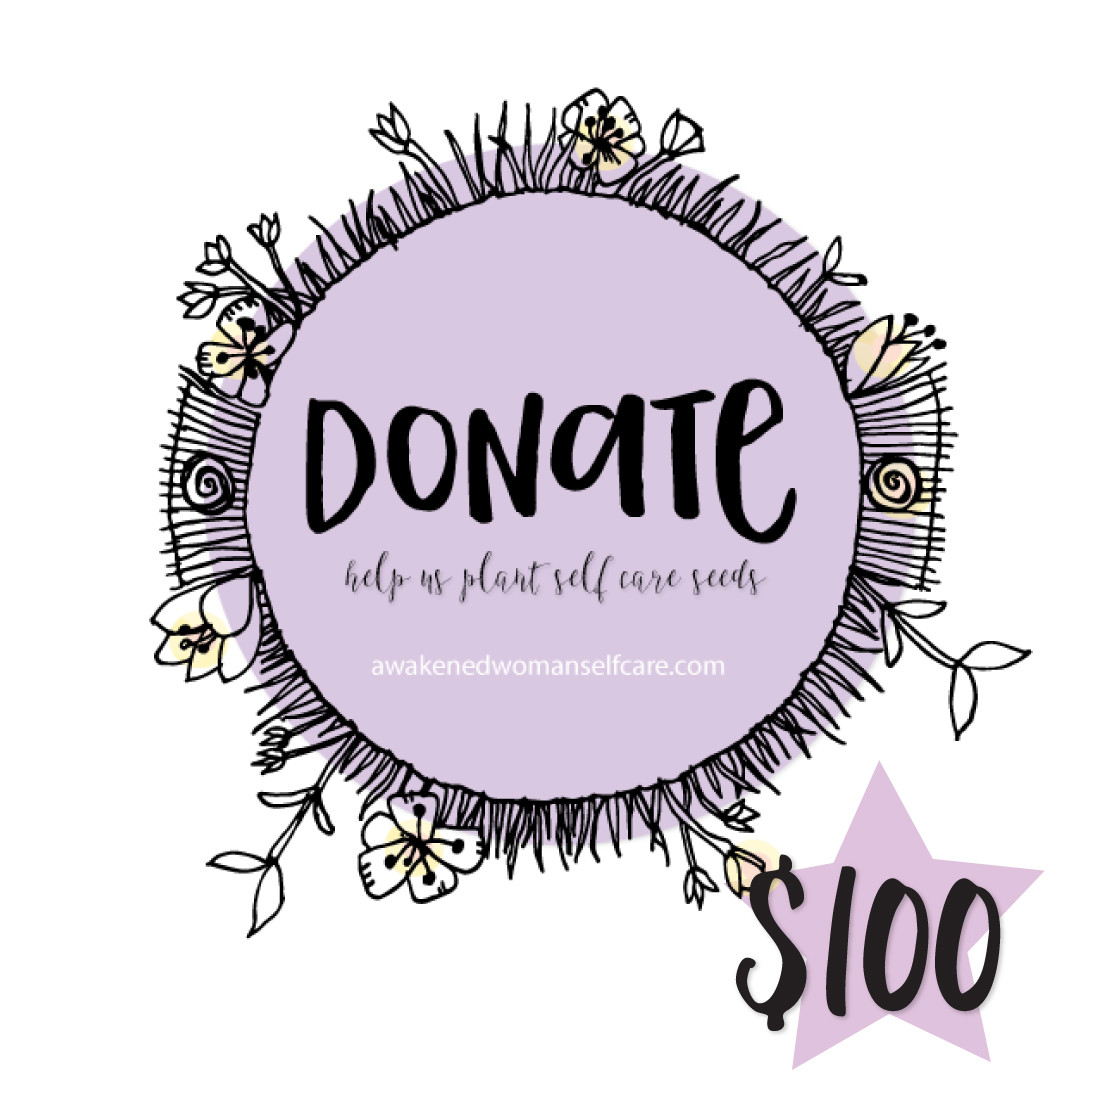 Donate to the podcast and help seed sacred self care in others